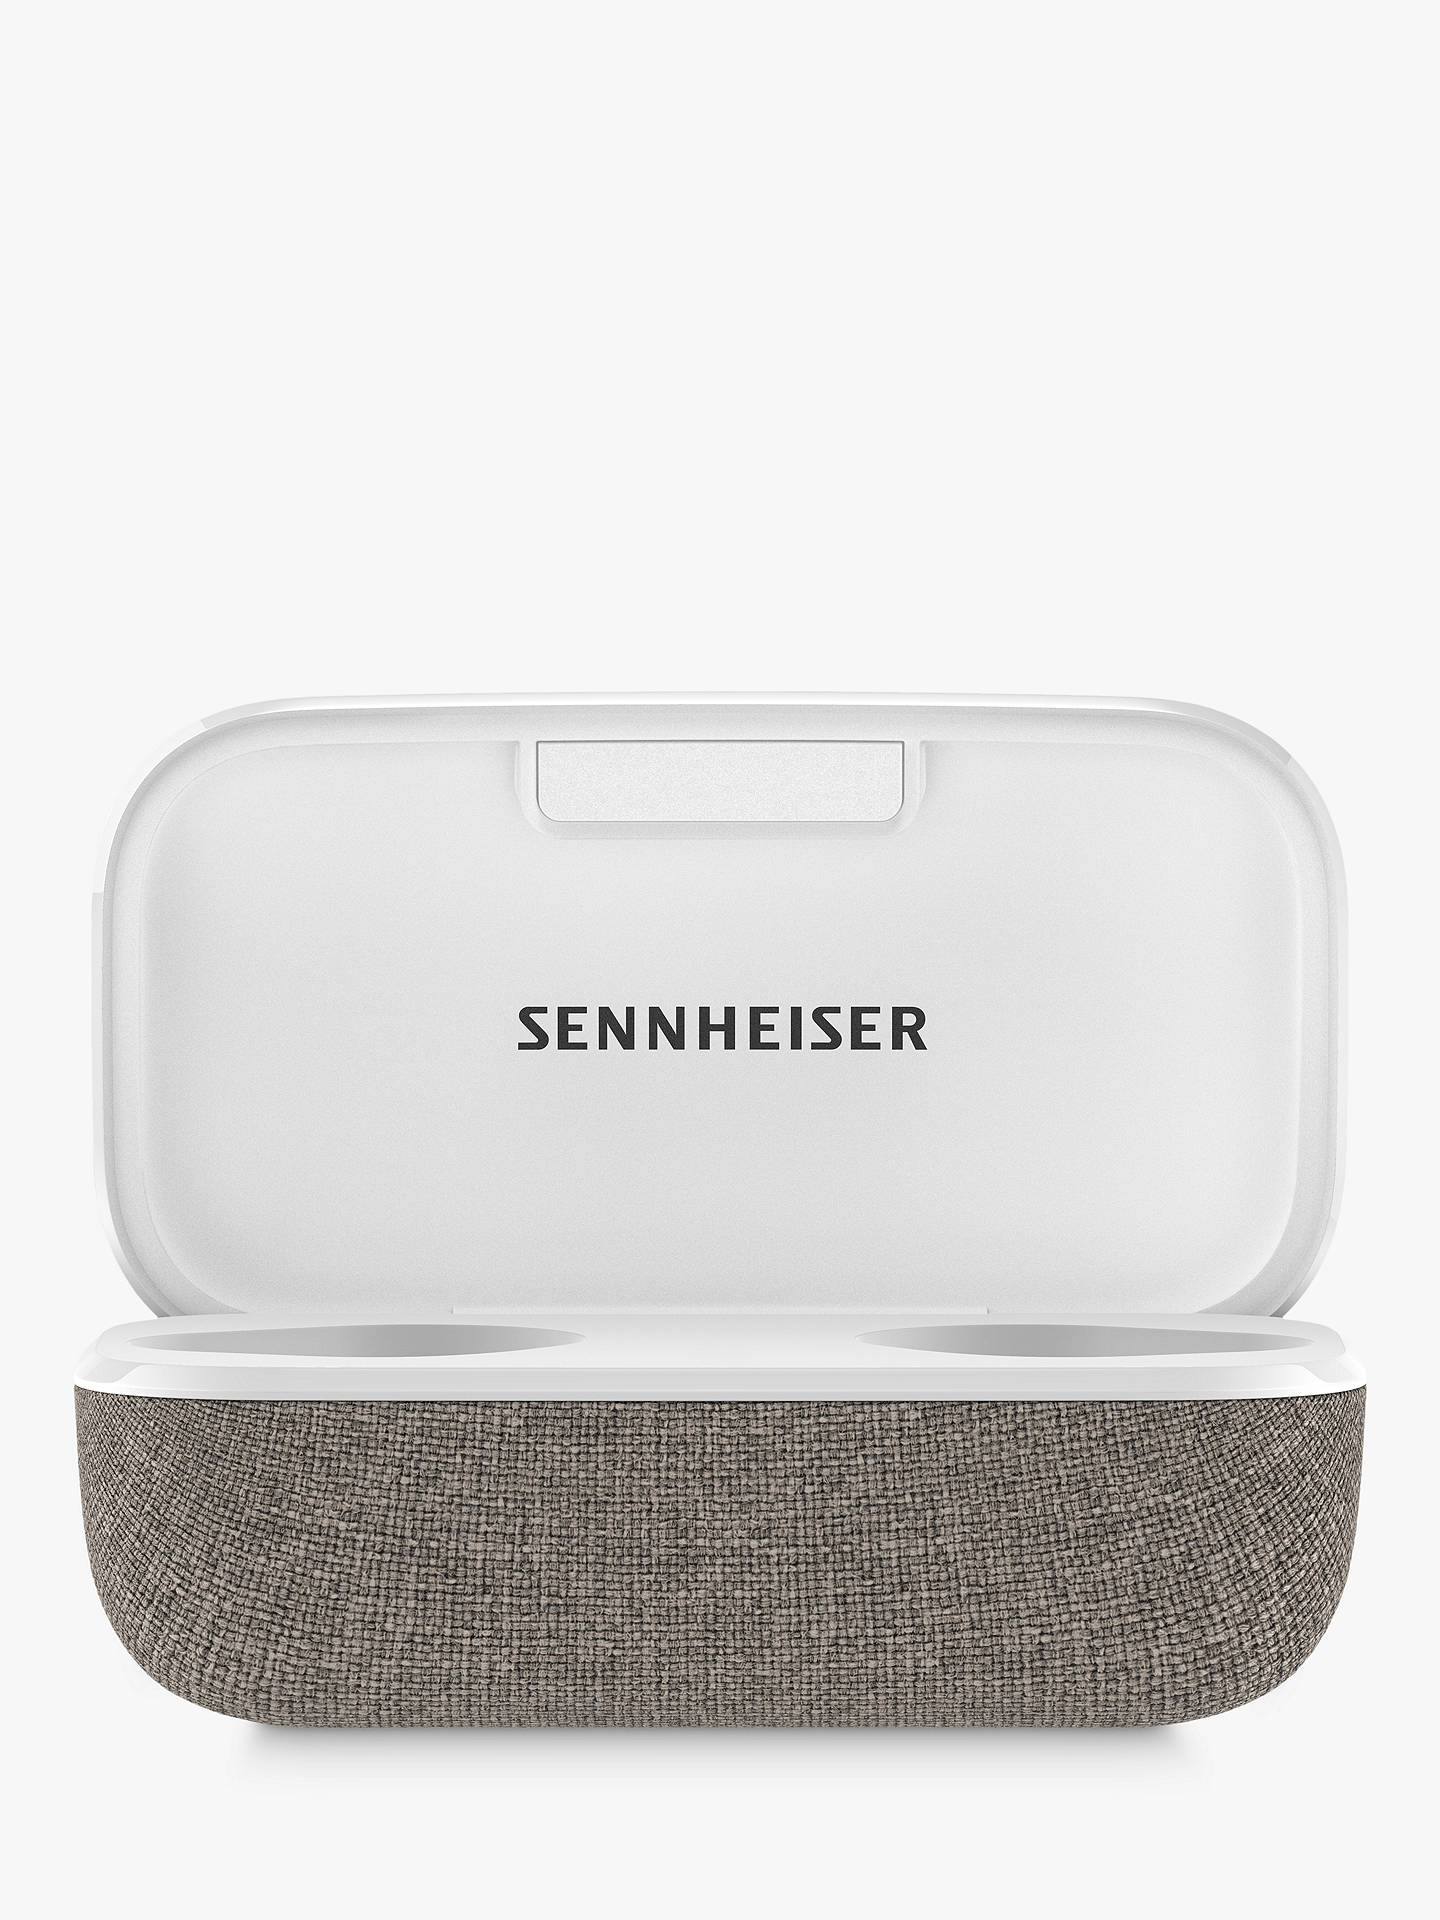 Buy Sennheiser Momentum True Wireless 2 Noise Cancelling Bluetooth In-Ear Headphones with Mic/Remote, White Online at johnlewis.com